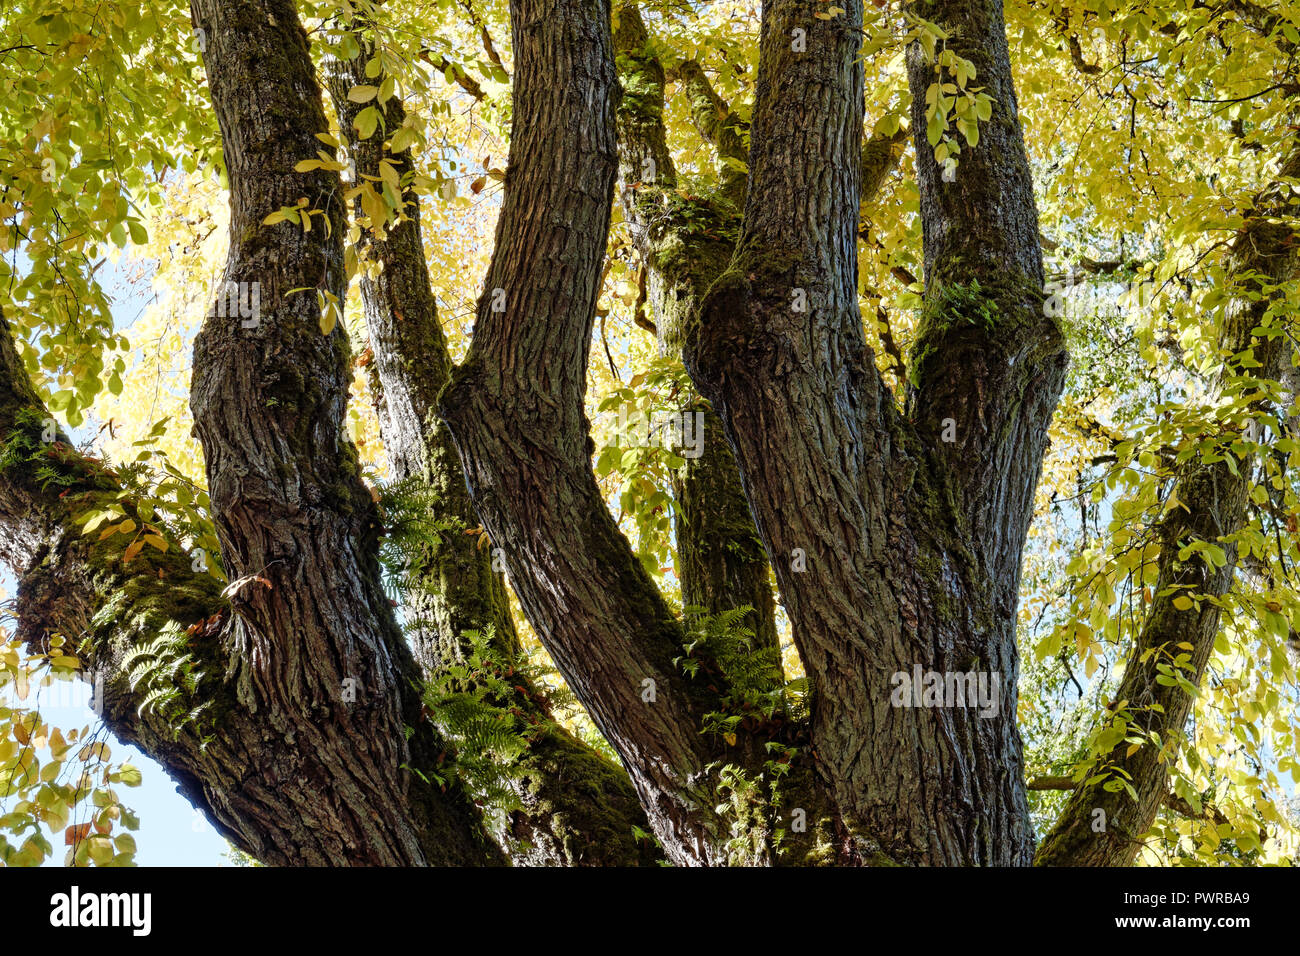 View from below of the trunk and branches of a mature American elm Ulmus Americana tree with fall foliage Vancouver, BC, Canada - Stock Image